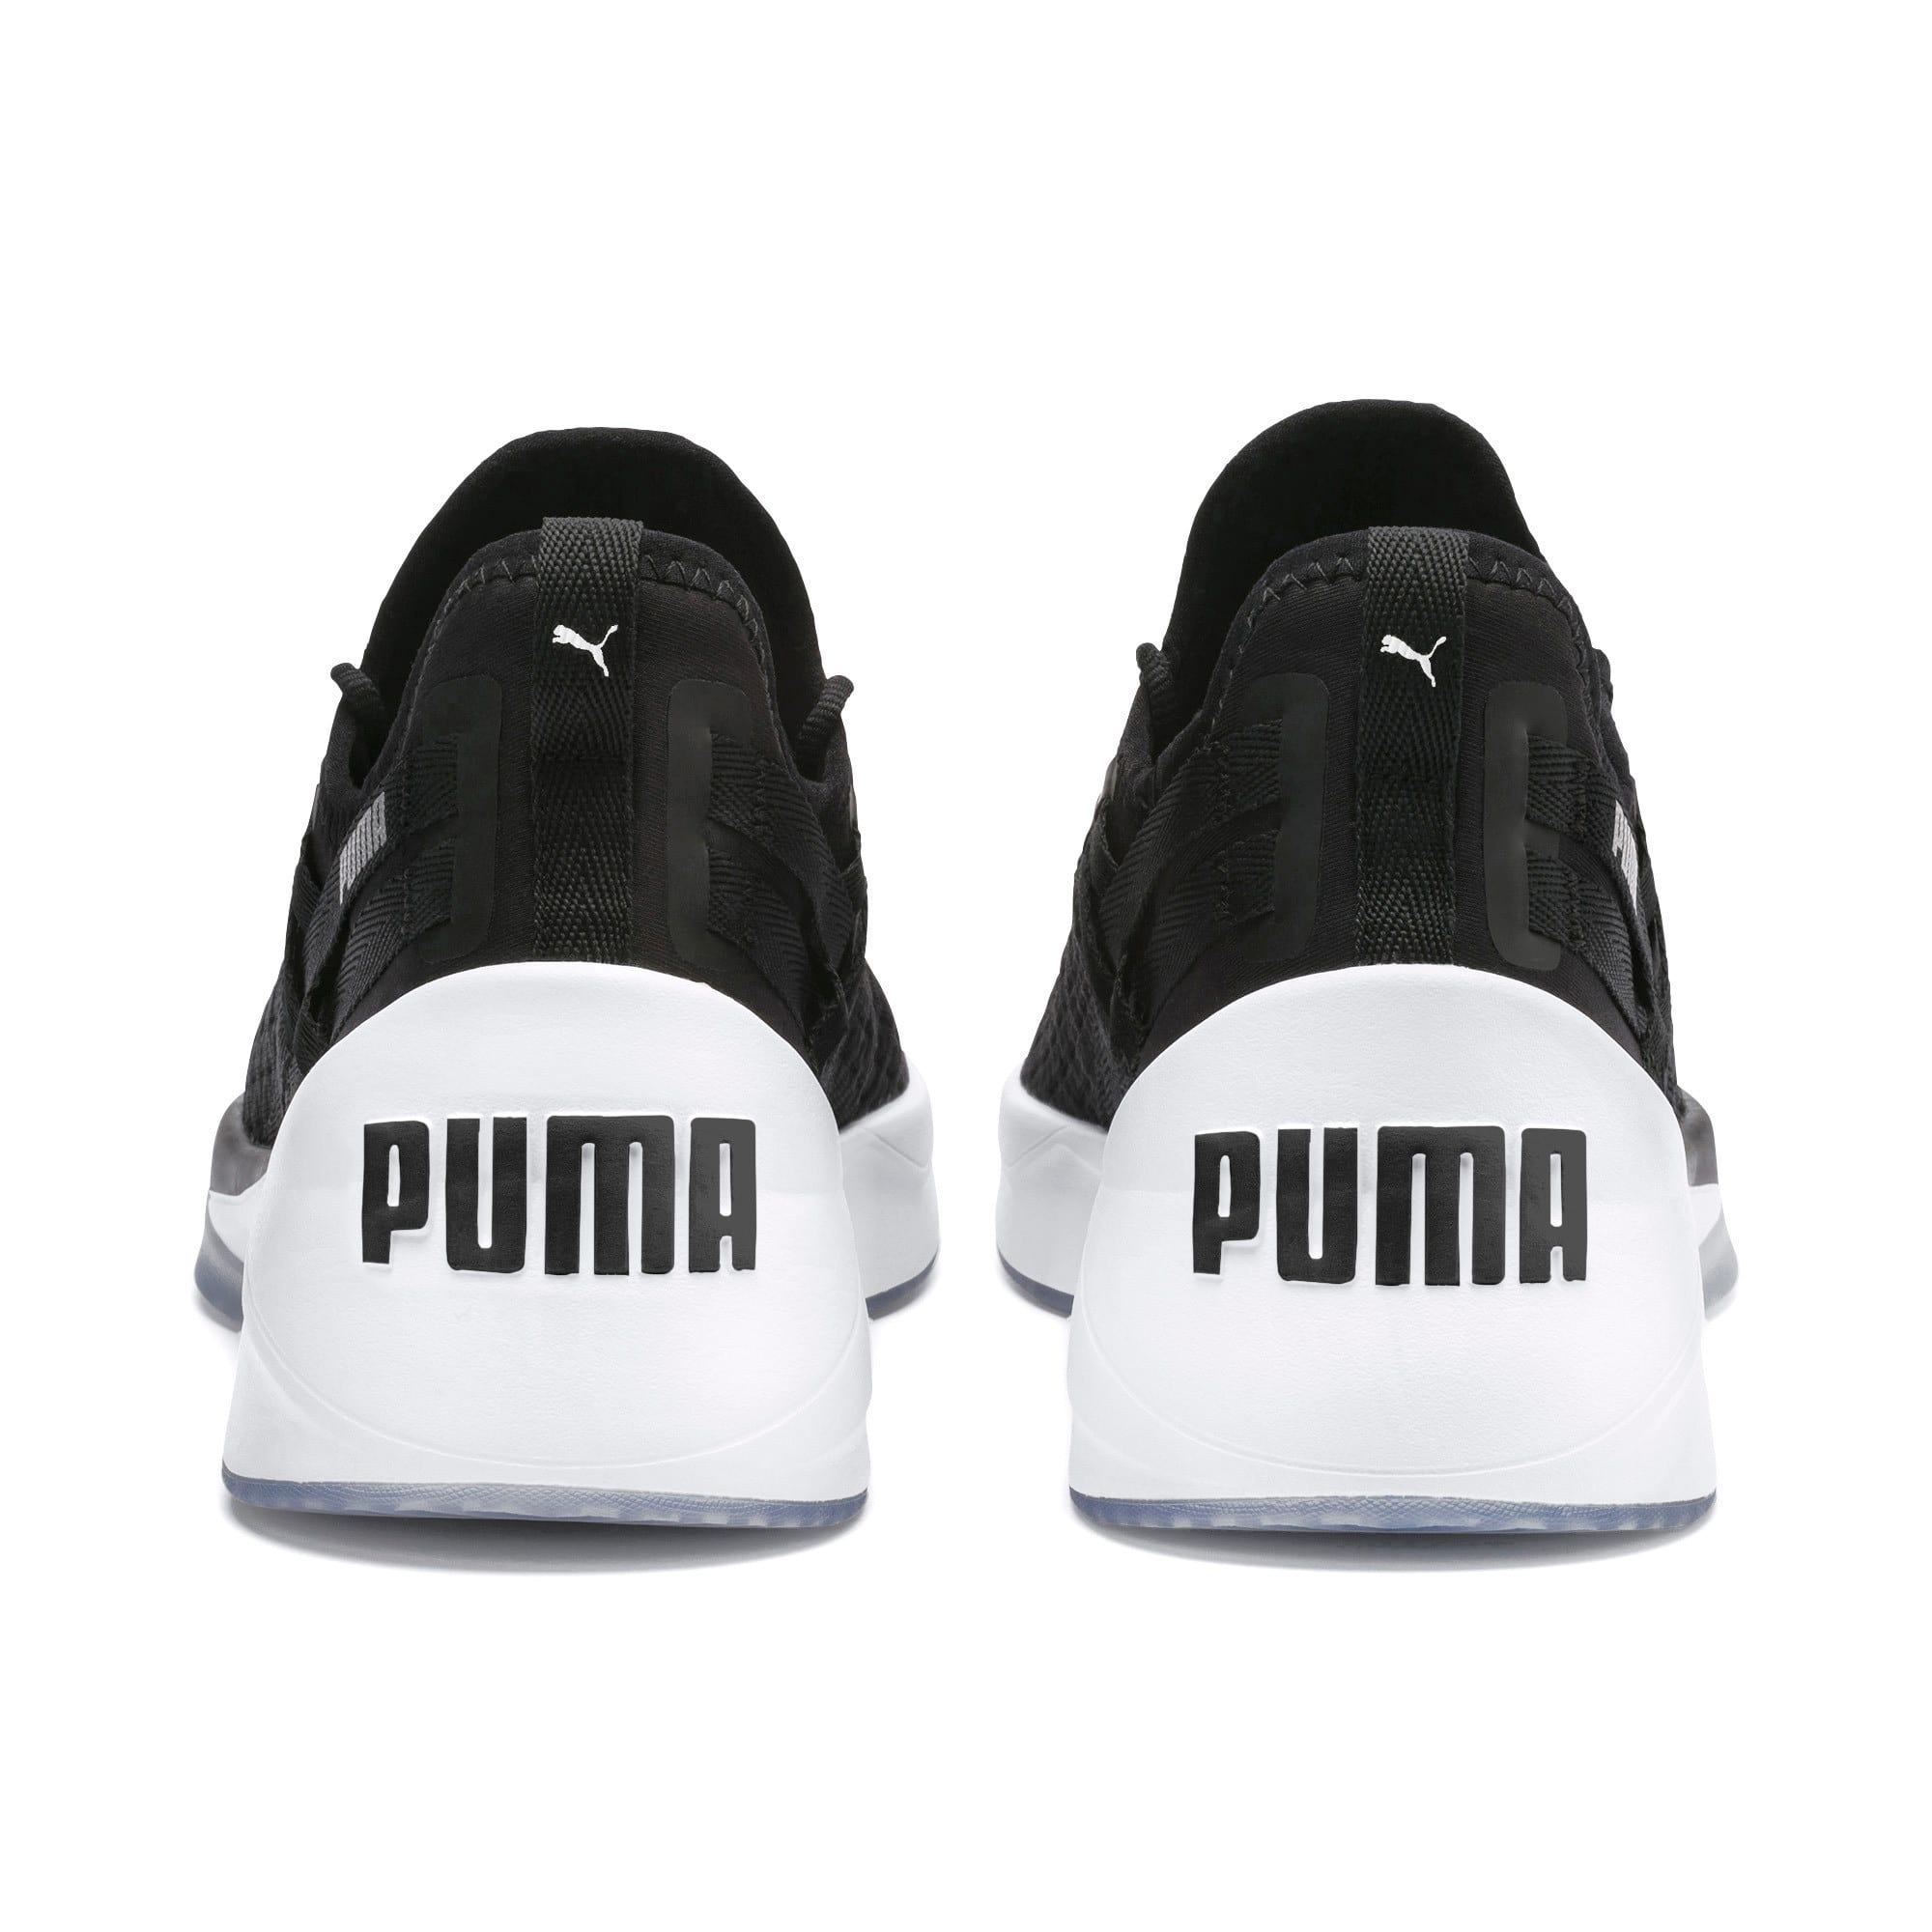 Thumbnail 3 of Jaab XT Women's Training Trainers, Puma Black-Puma White, medium